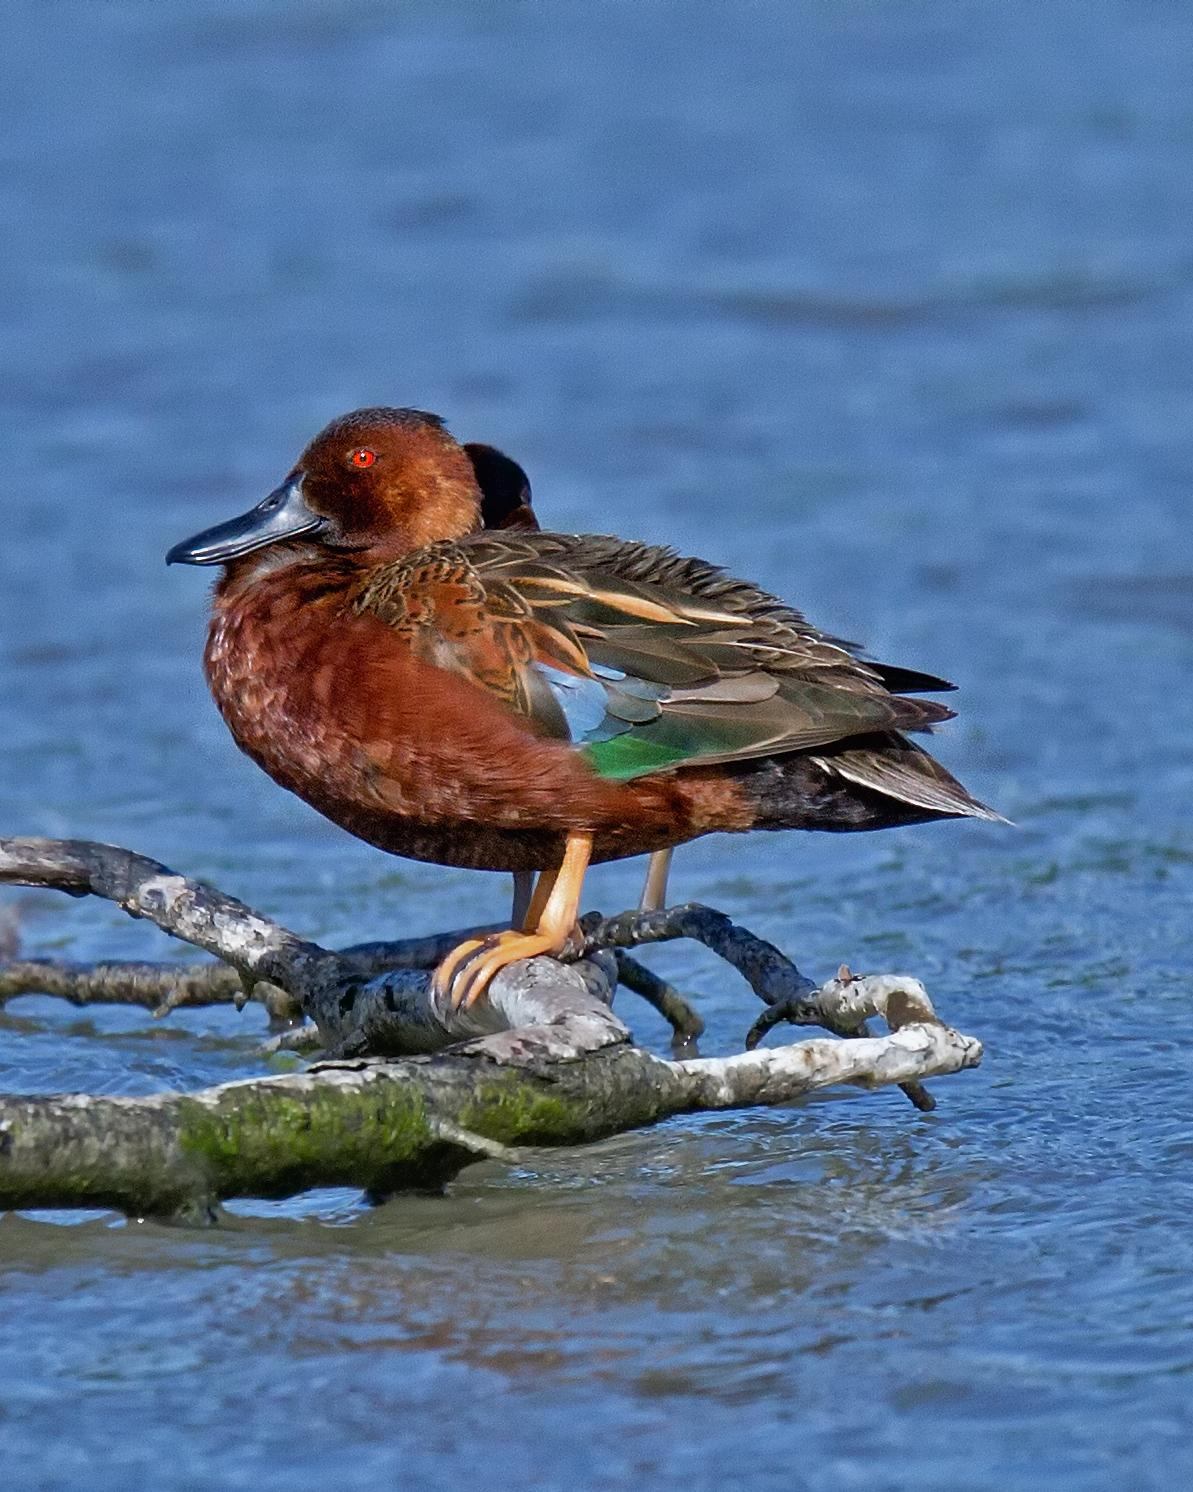 Cinnamon Teal Photo by JC Knoll